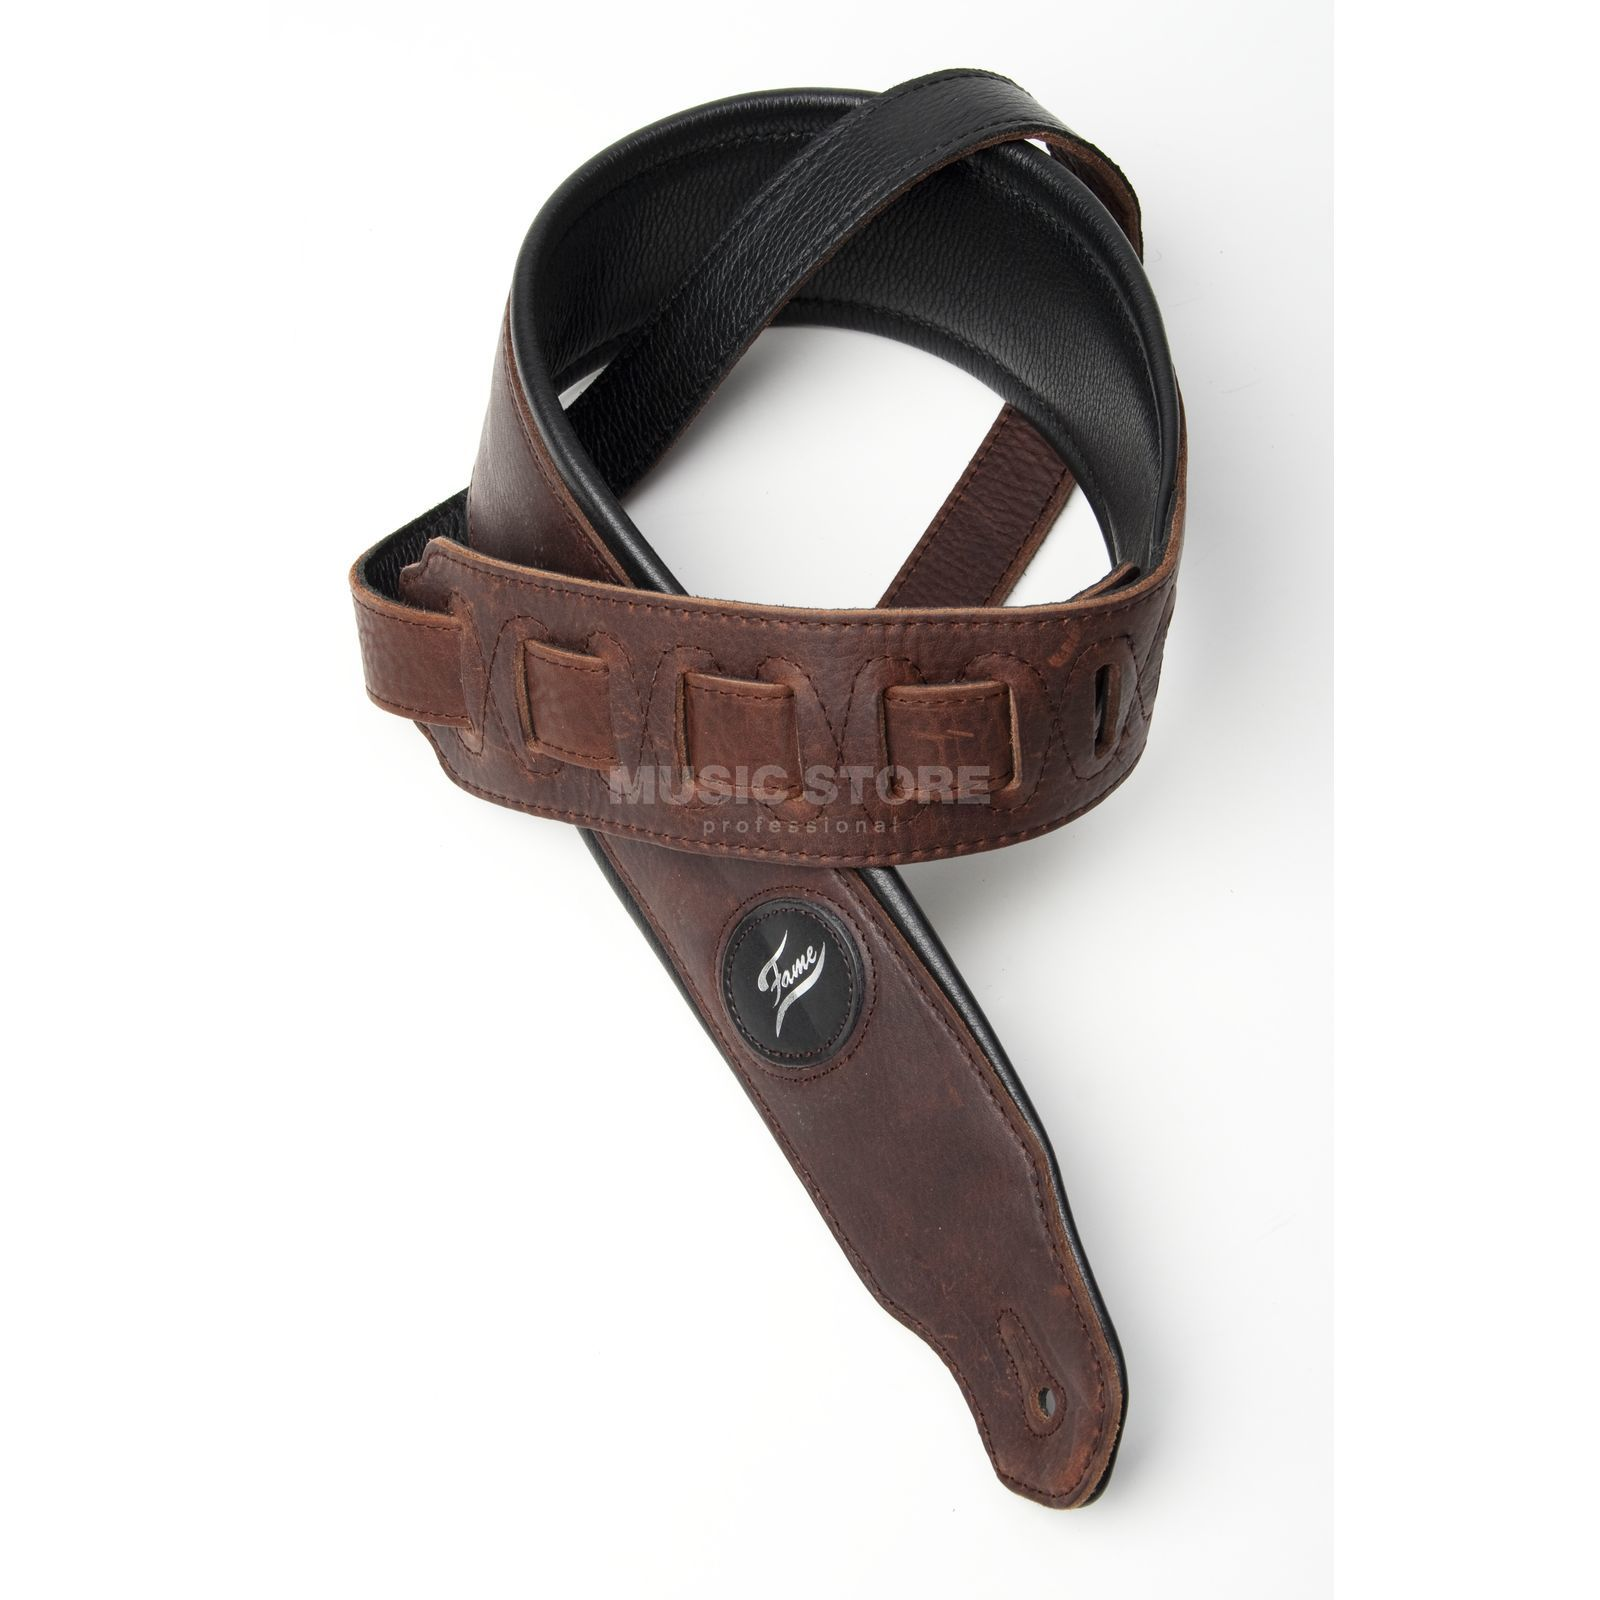 Fame Guitar Strap 653 Brown - Genuine Leather Immagine prodotto